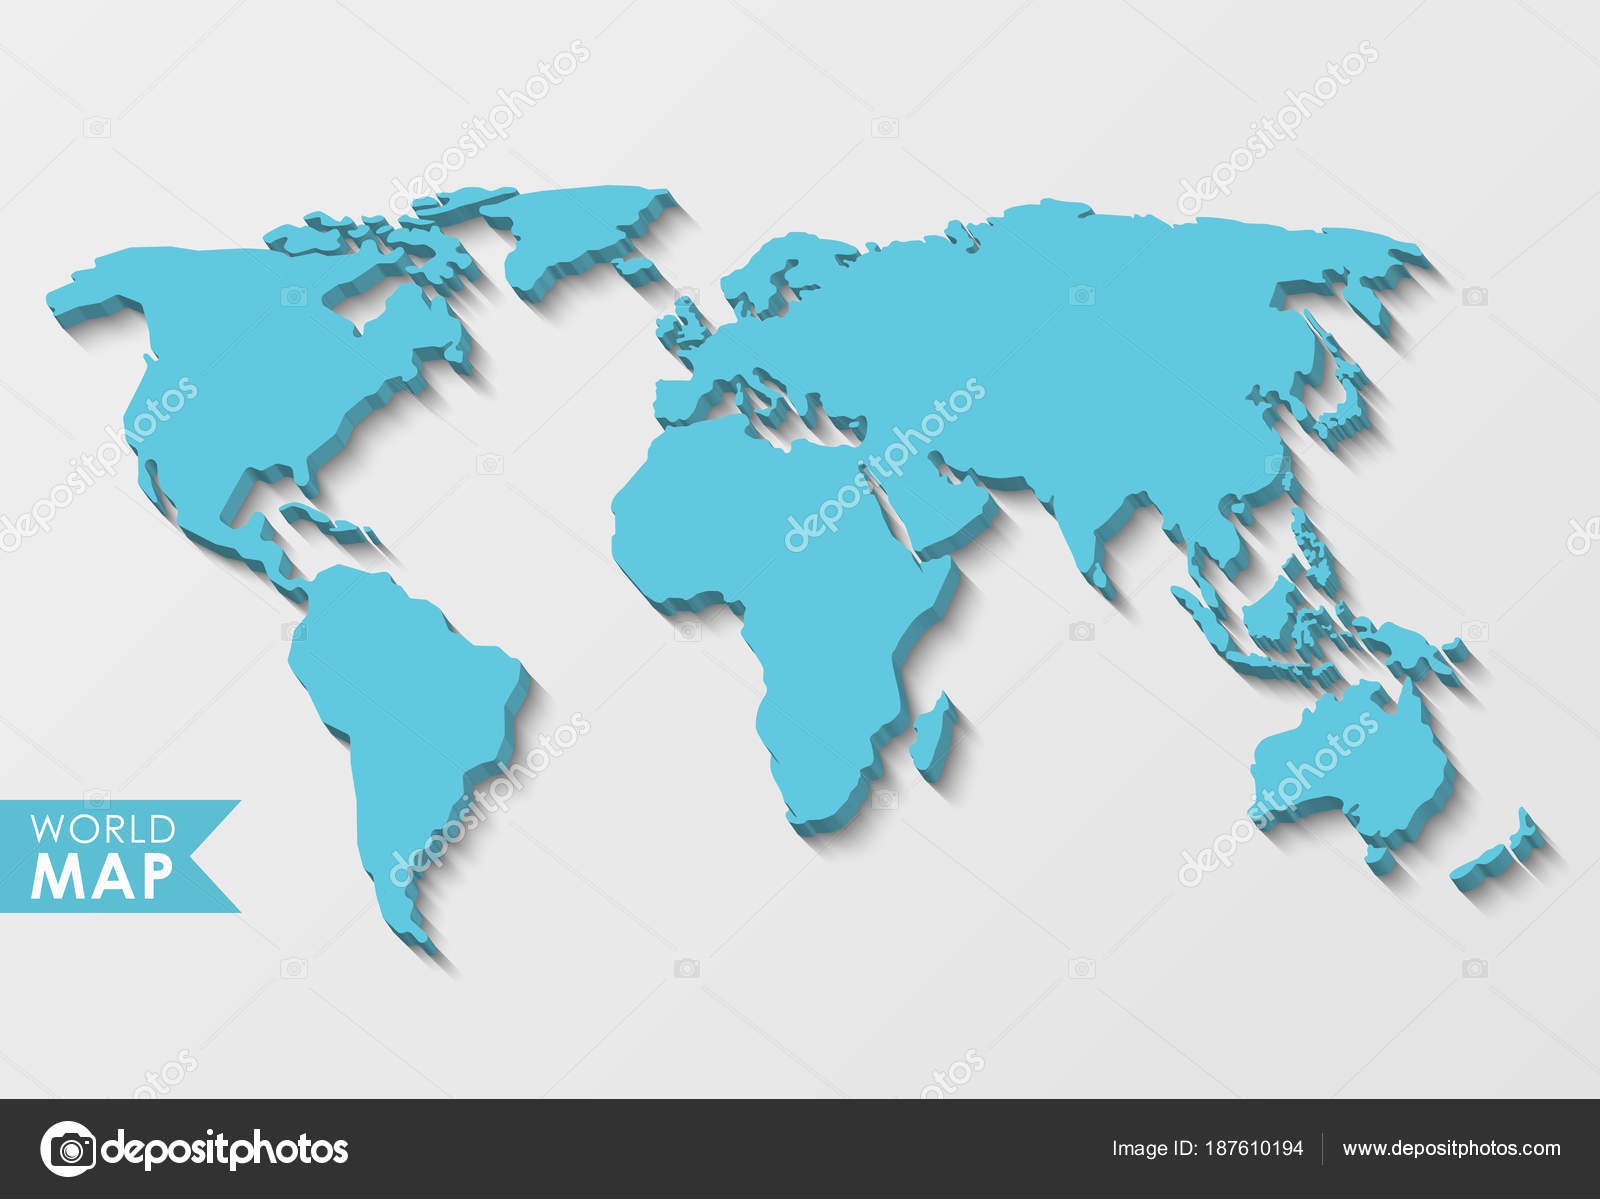 3d world map stock vector kateku 187610194 3d world map with a long shadow isolated on a light background vector by kateku gumiabroncs Choice Image